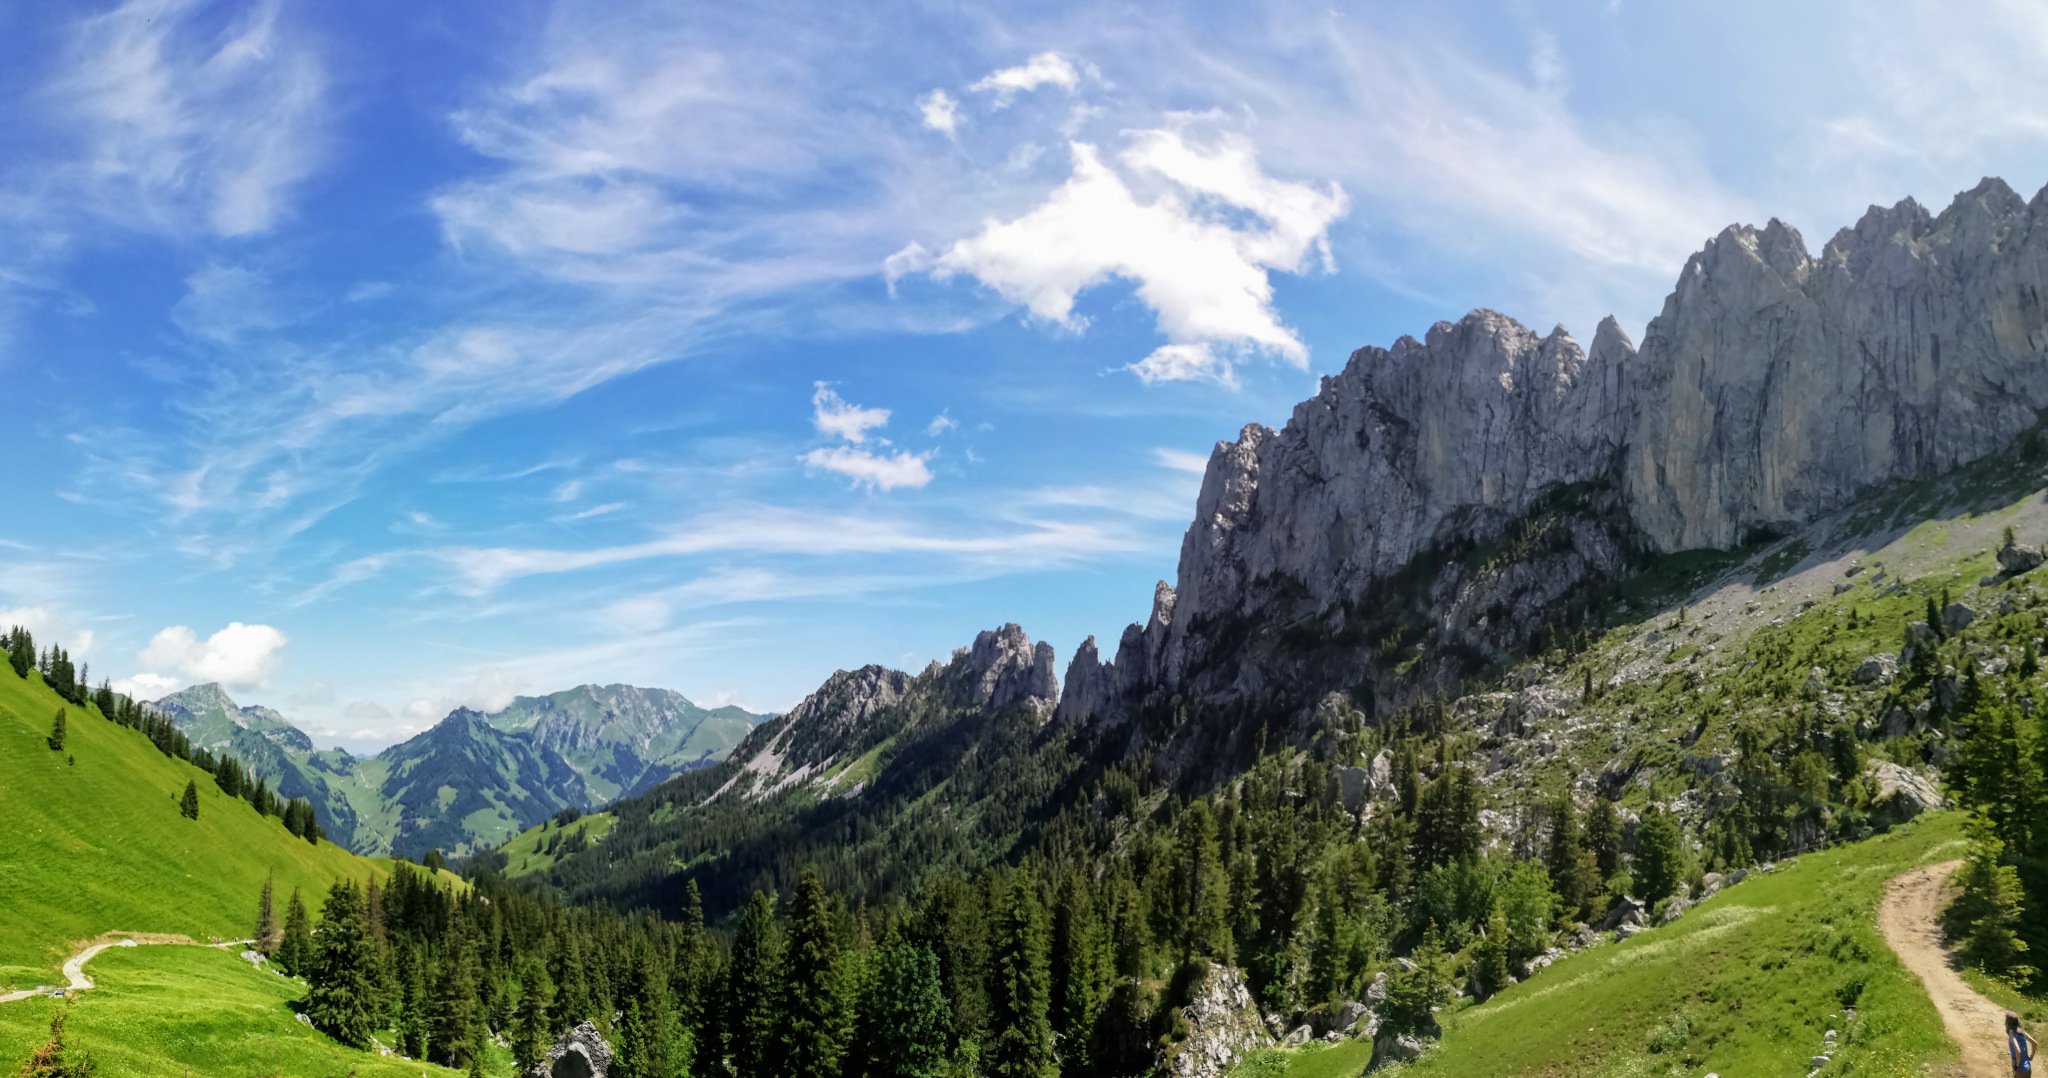 Gastlosen Tour - great scenery and flora in the Swiss Pre-Alps